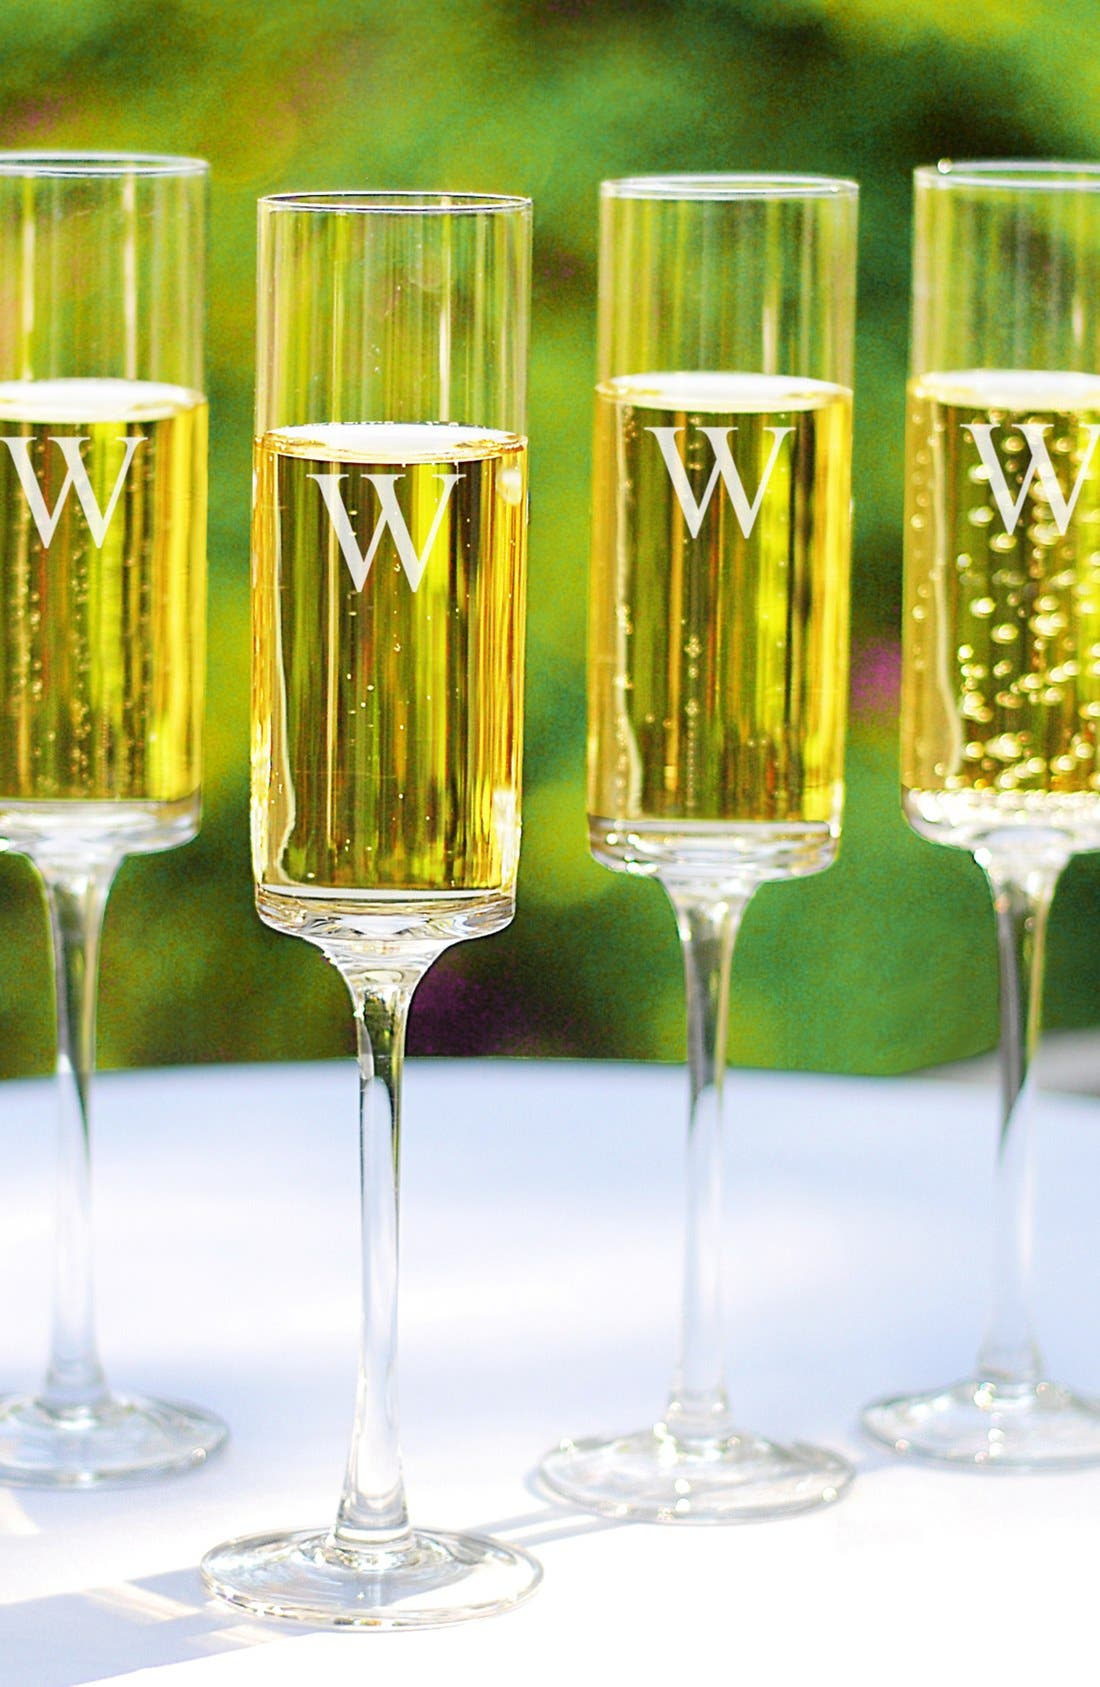 Alternate Image 1 Selected - Cathy's Concepts Personalized Contemporary Champagne Flutes (Set of 4)